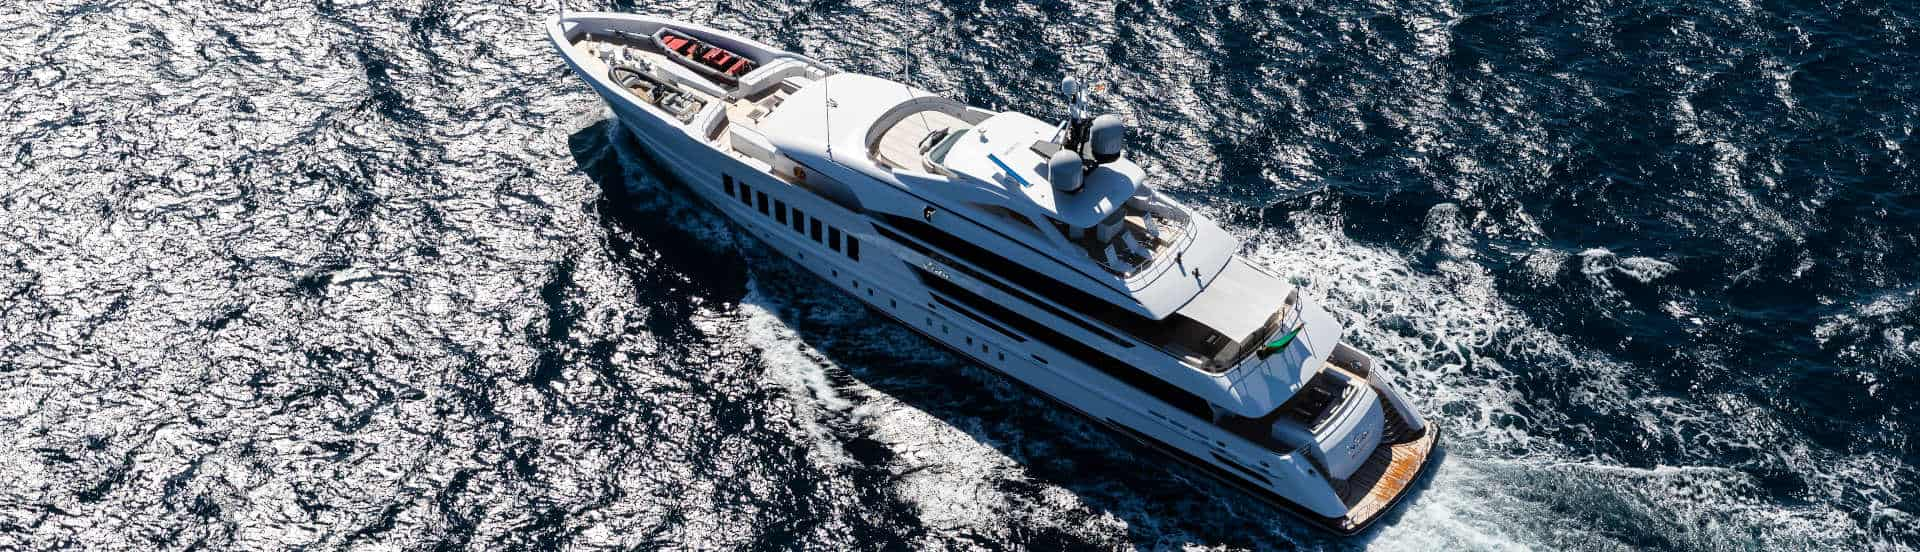 Vida Yacht - Jeff Brown photo